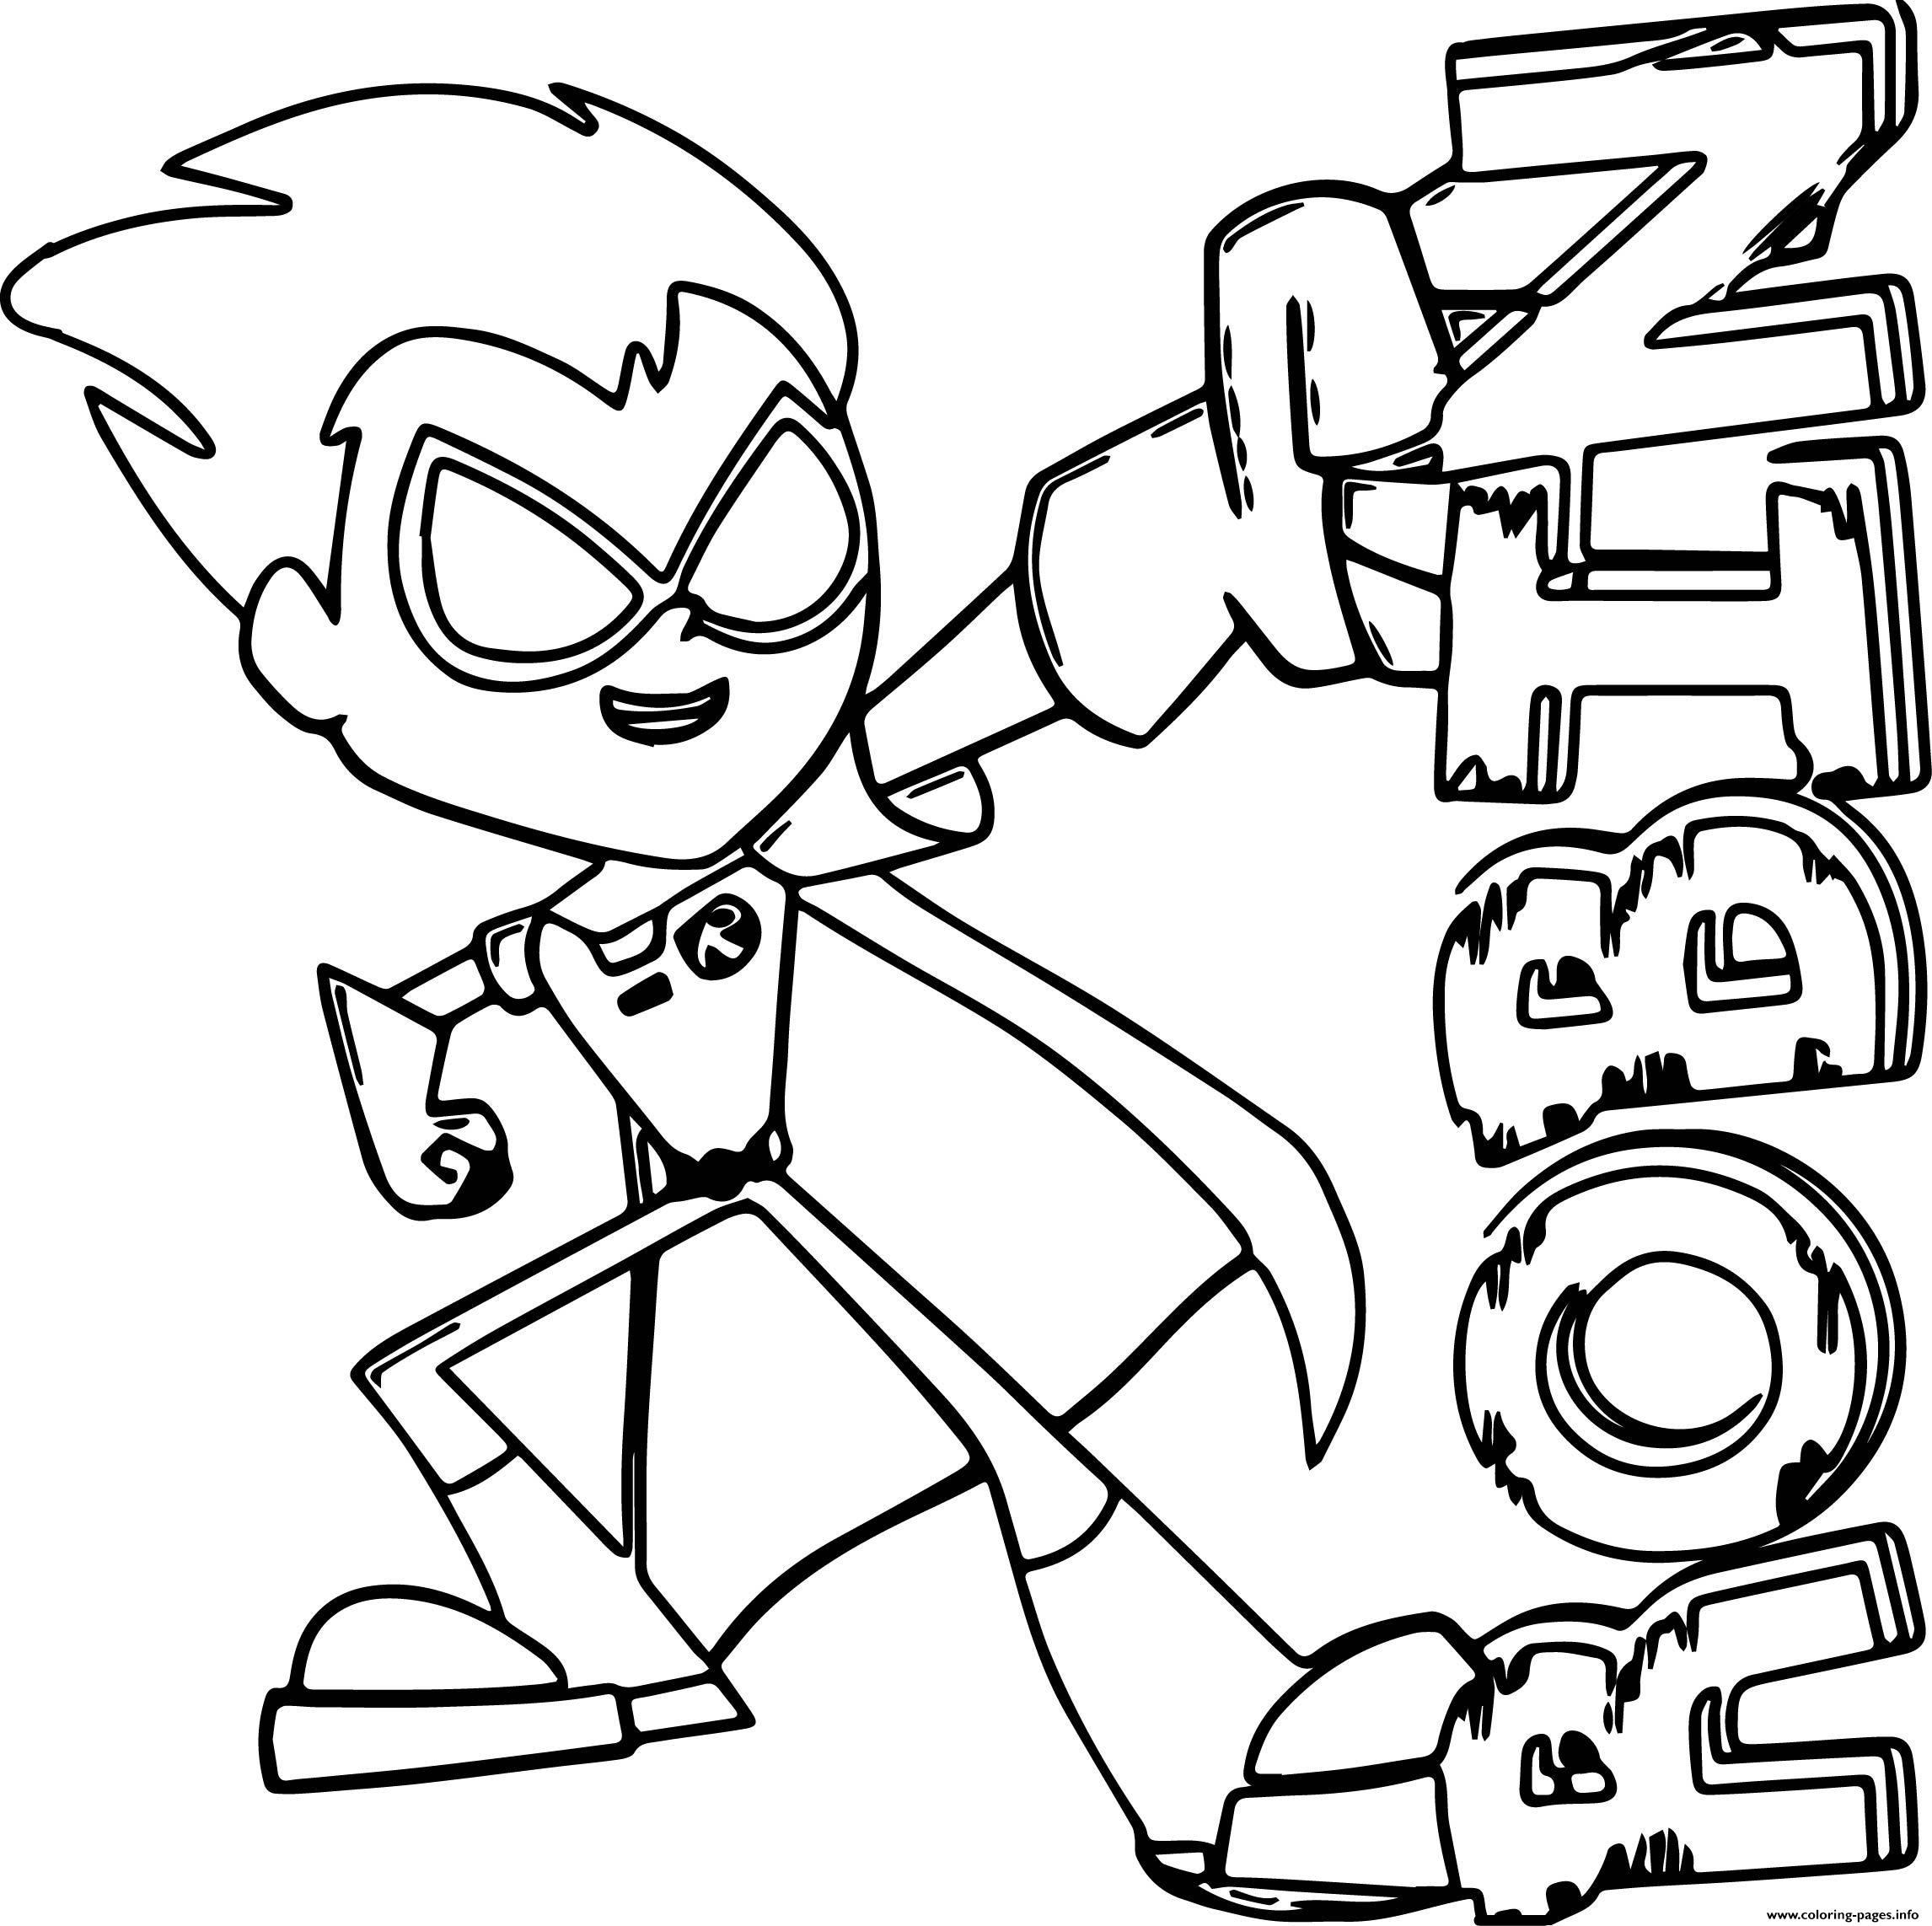 Robin De Teen Titans Go Batman Coloring Pages Printable